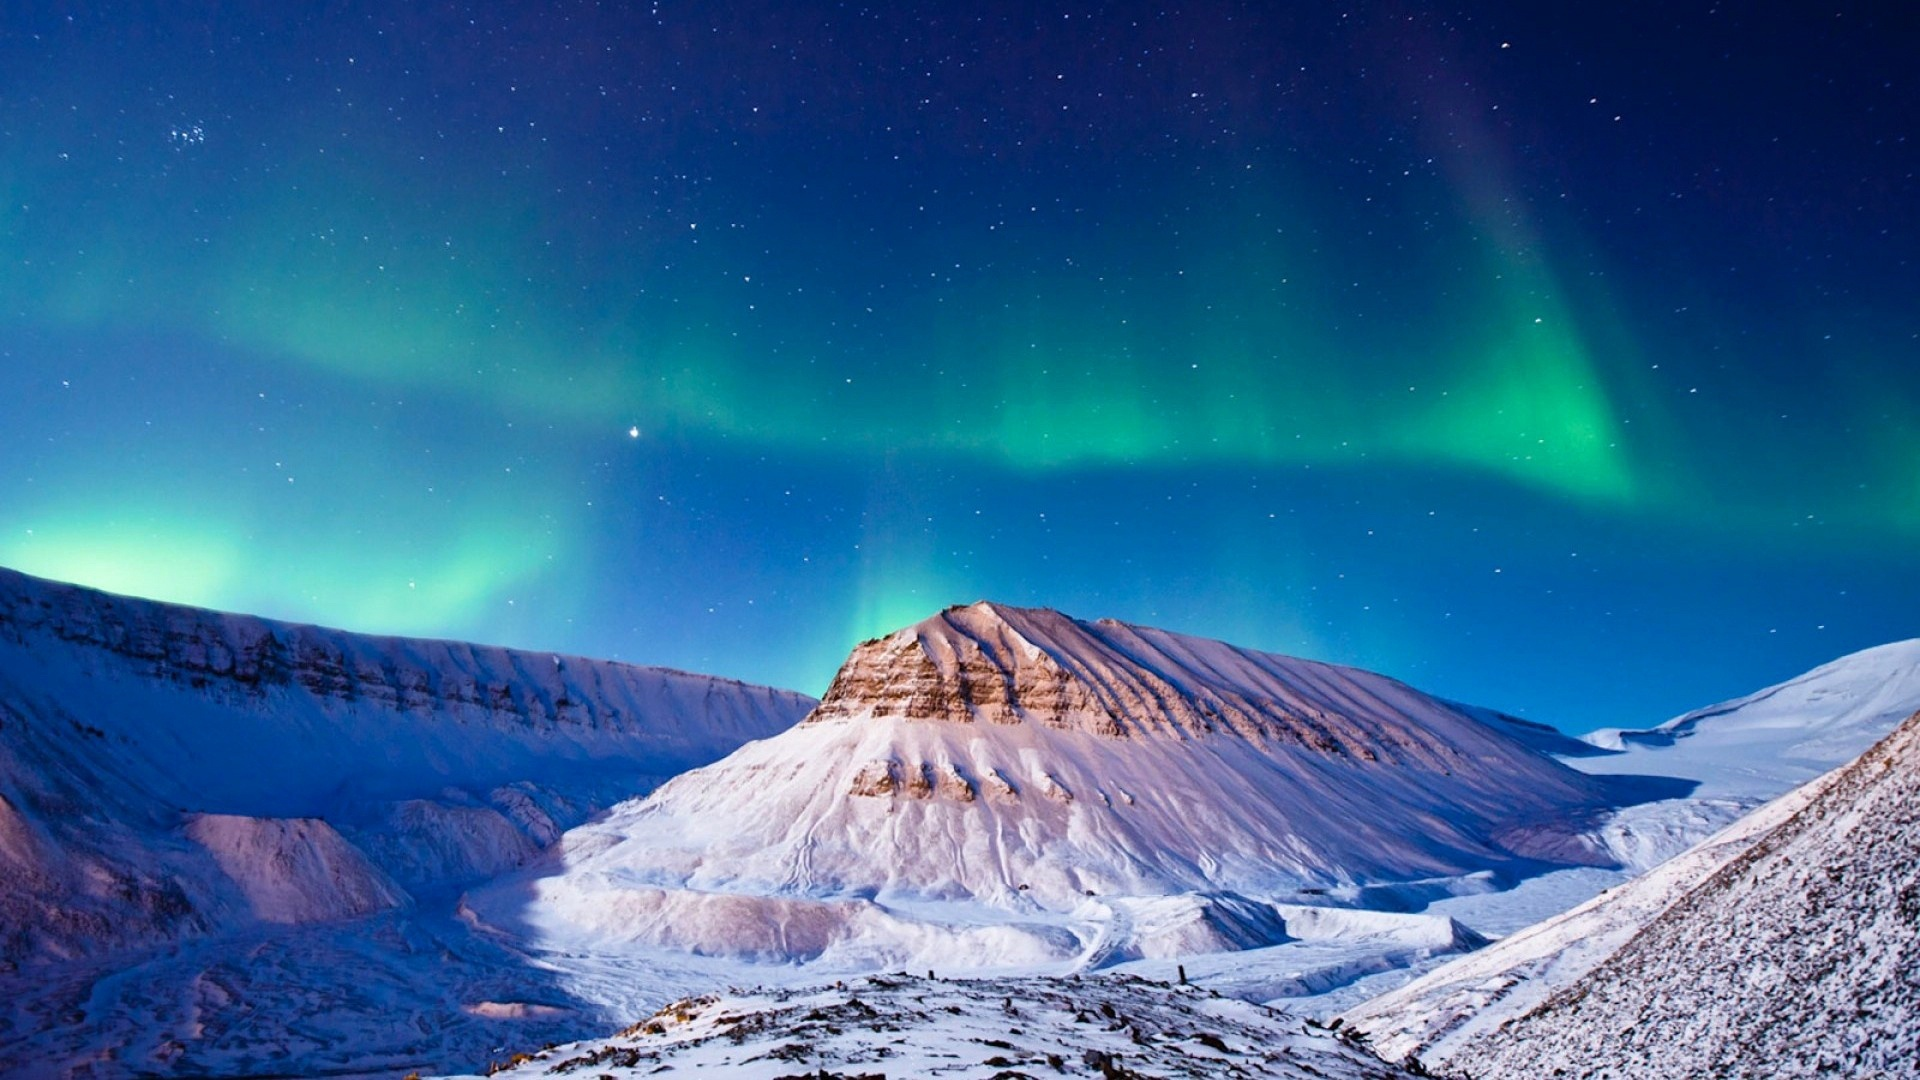 Night Sky Winter Snow Mountains 1920 x 1080 Download Close 1920x1080